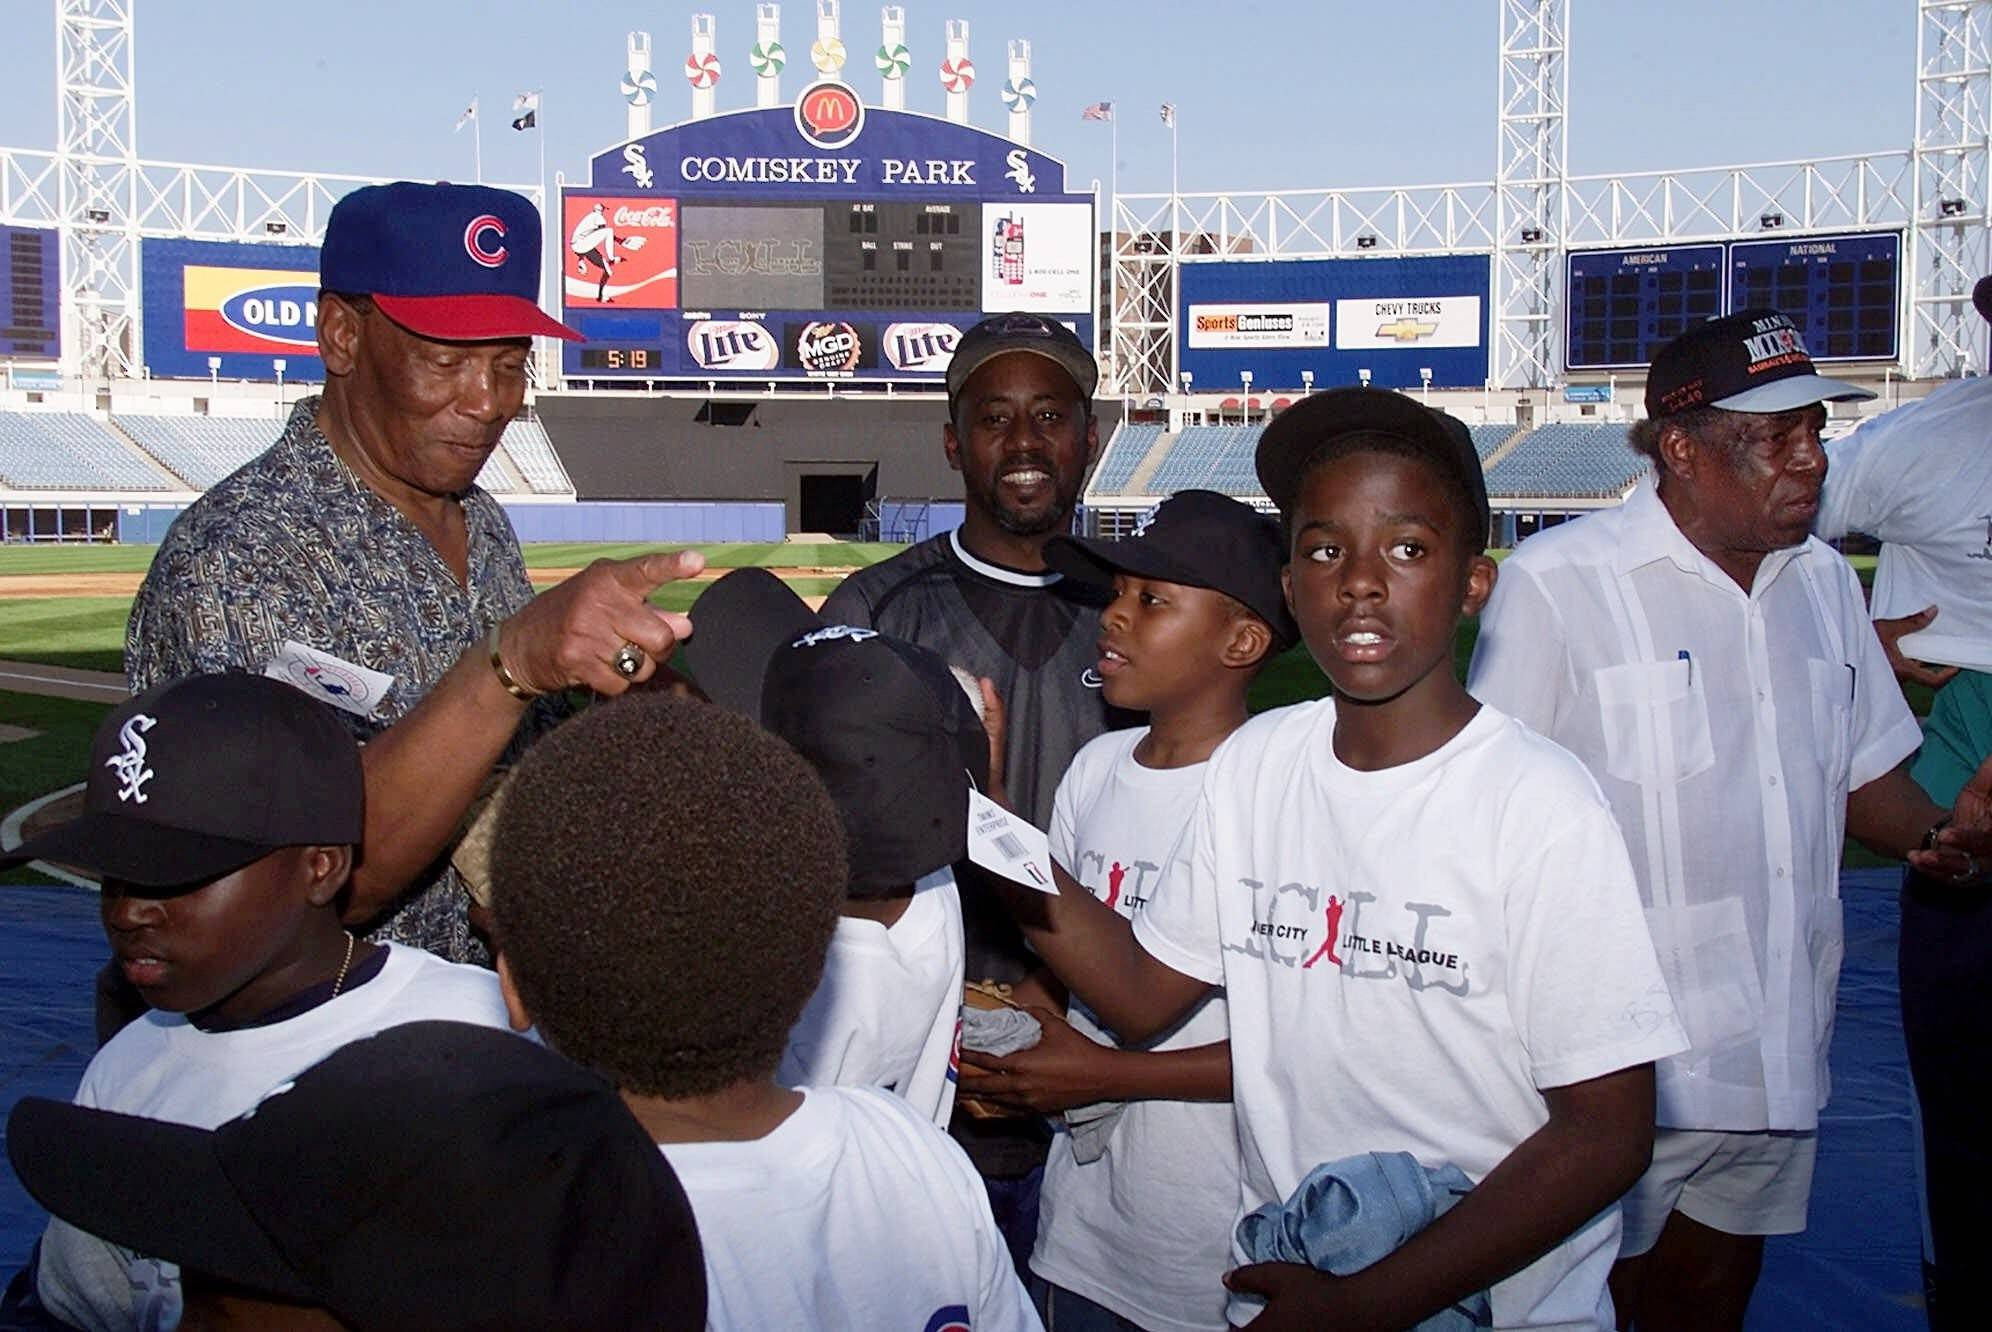 Chicago has lost baseball legends Ernie Banks, left, and Minnie Minoso, far right. Both men spent a lifetime in the city promoting the game and their favorite teams.